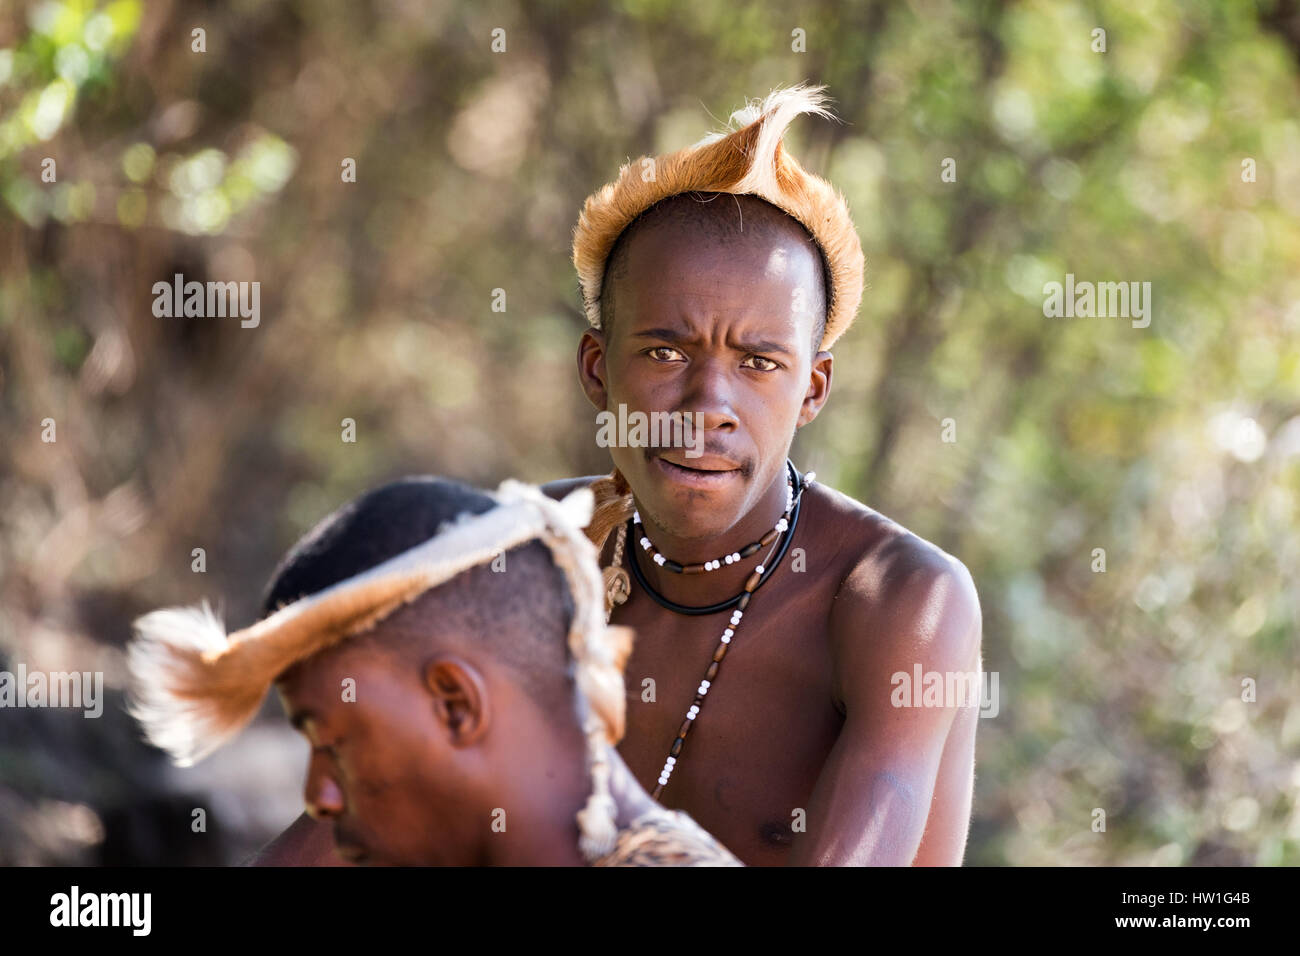 Lesedi Cultural Village, SOUTH AFRICA - 4 November 2016: Zulu tribesmen wearing impala skin headdress. Zulu is one of the five main tribes in South Af Stock Photo